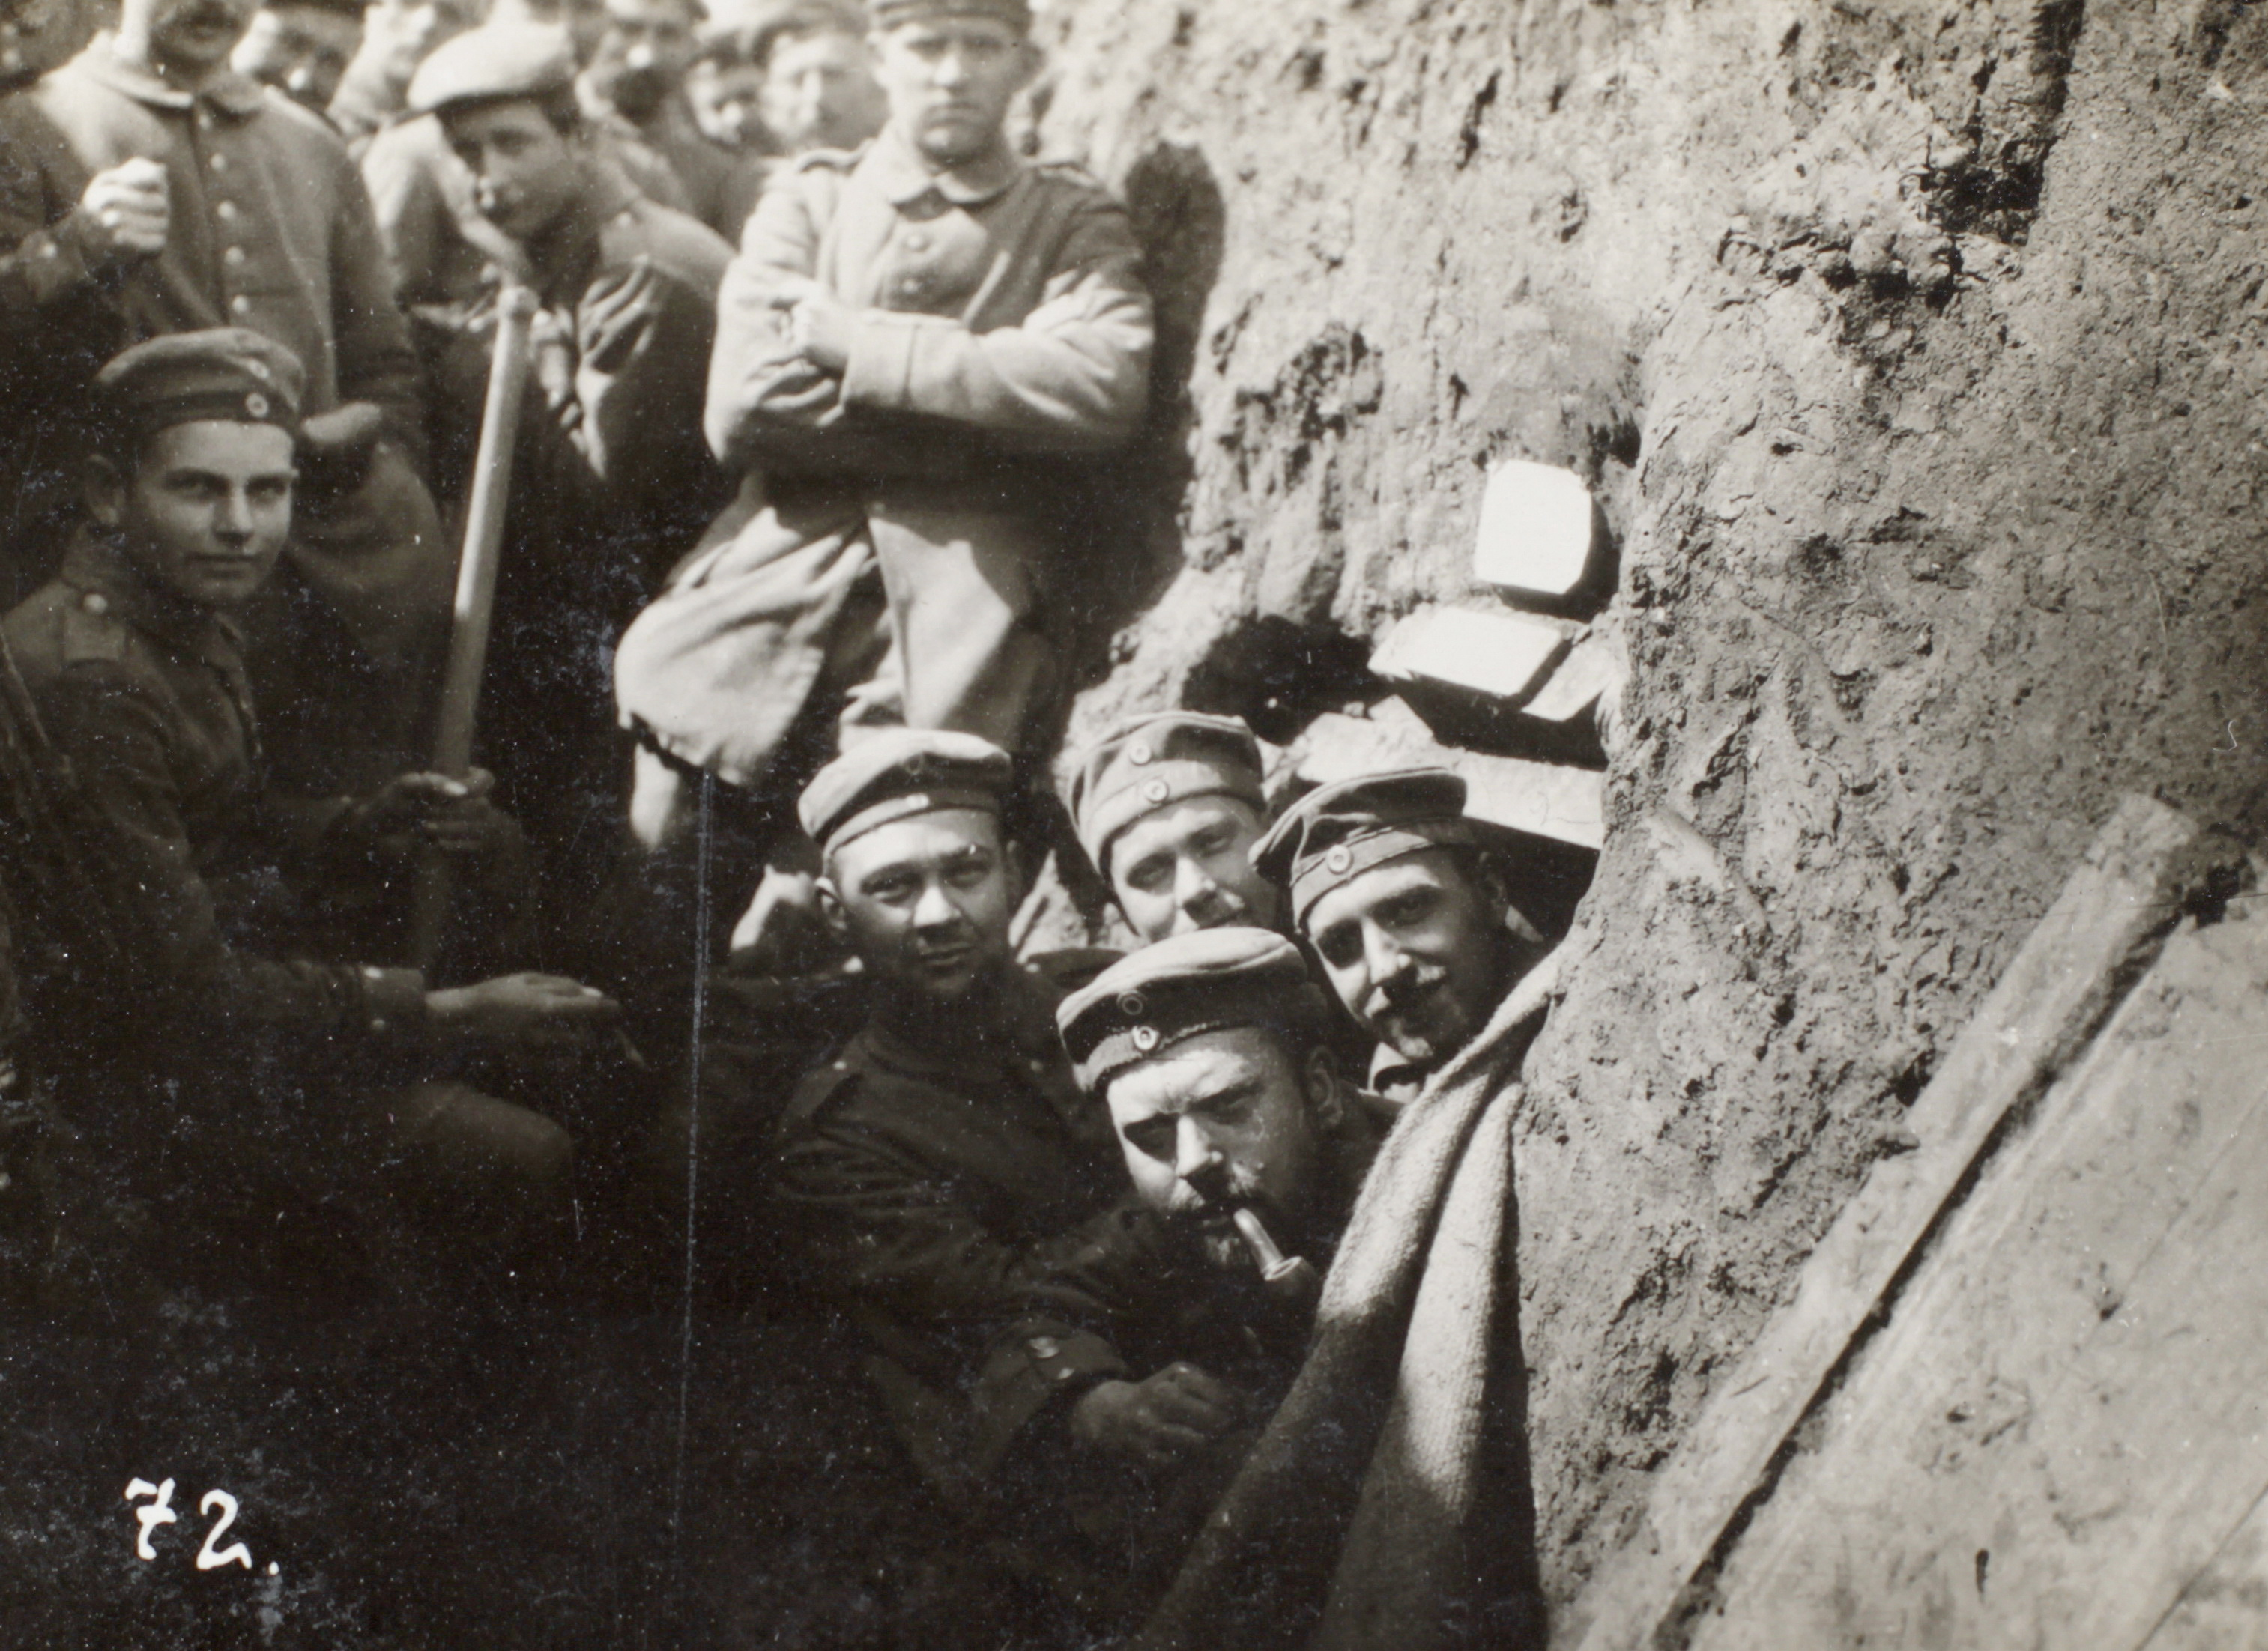 29. december 1914. I mudderet ved Moulin-sous-Touvent